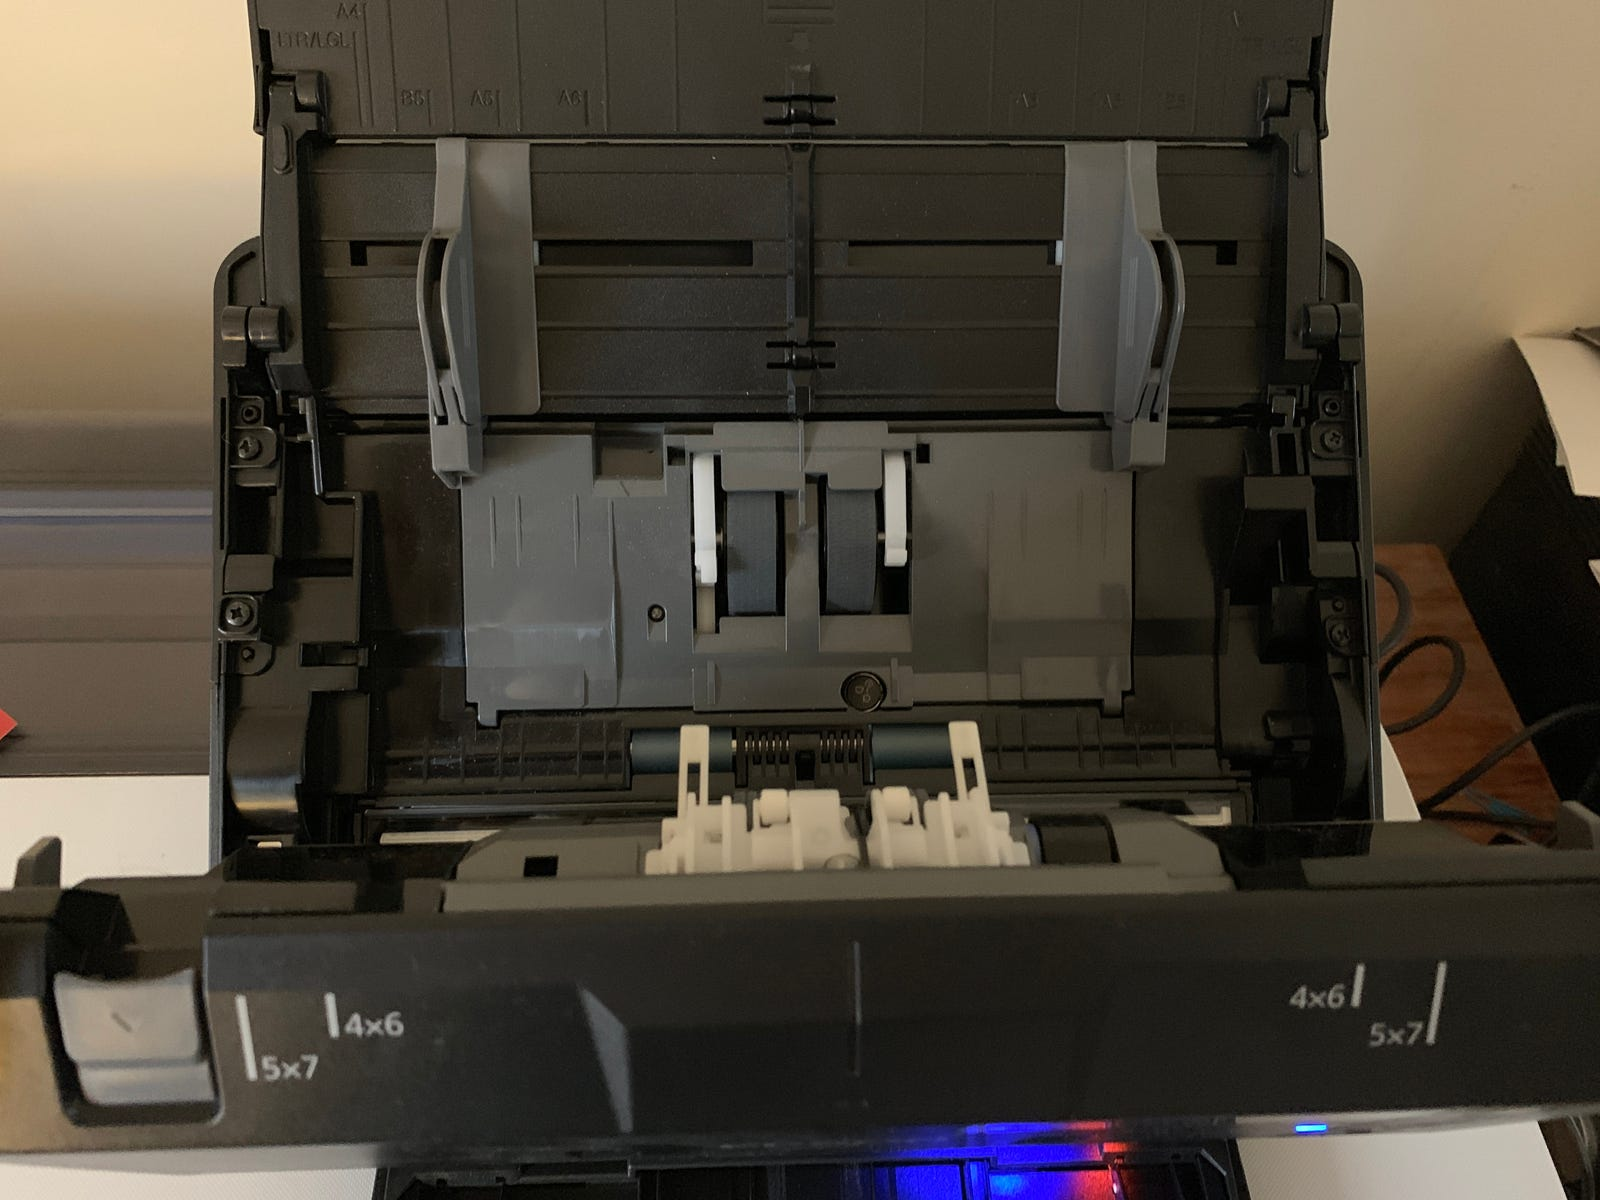 The Epson FastFoto FF-680W scanner with its front panel open.